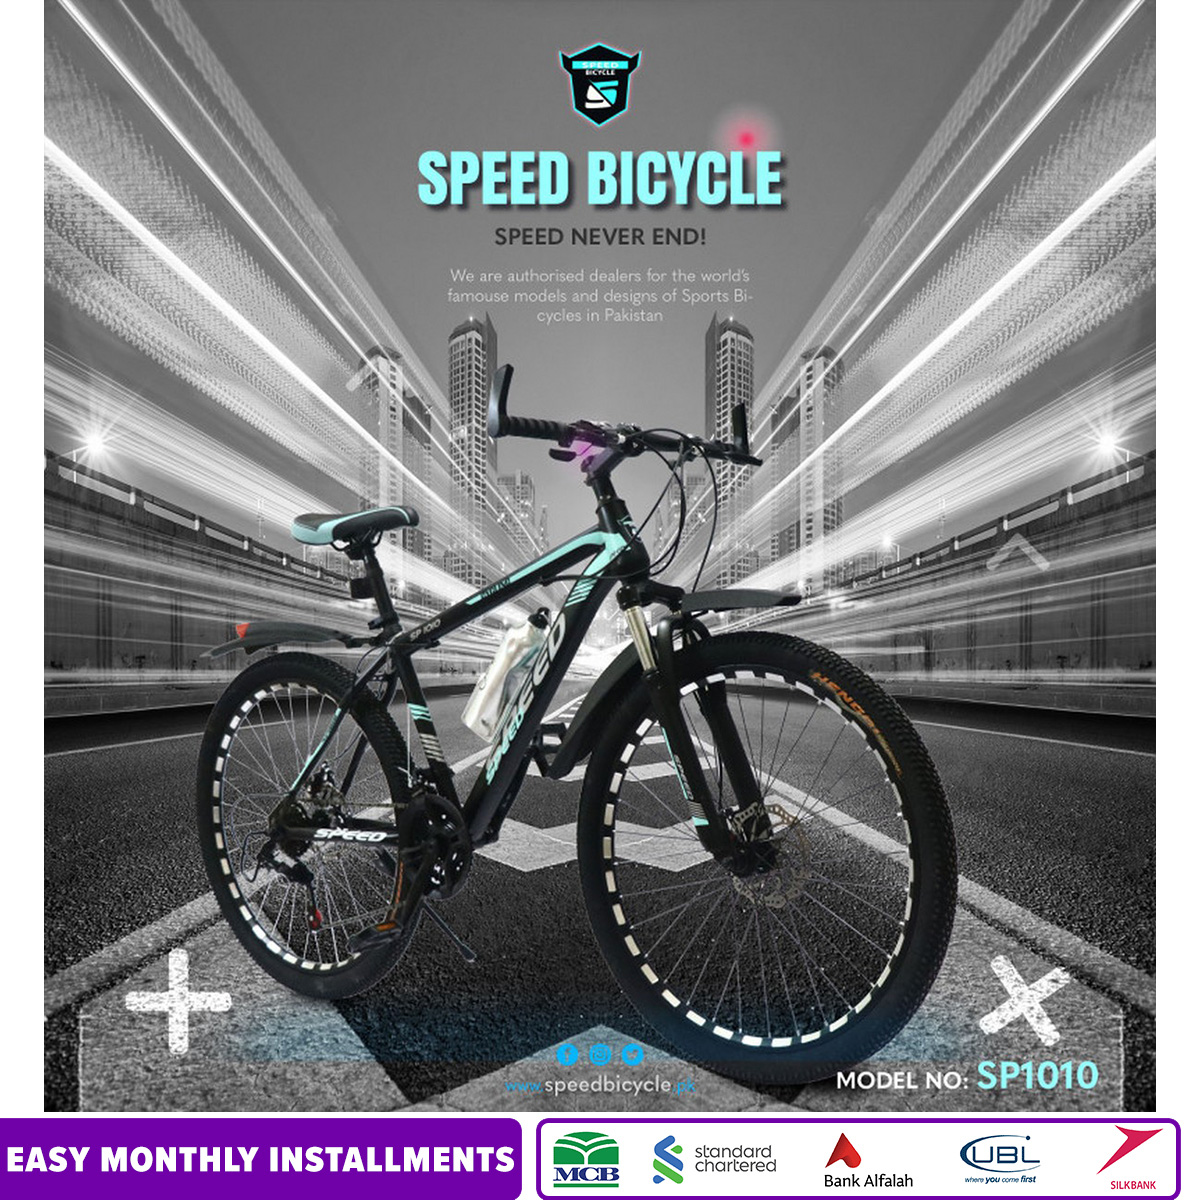 Speed Bicycle 26 inches Adjustable Seat Reflector RIM Hand Safety System and Gear Safety Mountain & Road Bike with Bottle Alloy - Multicolors